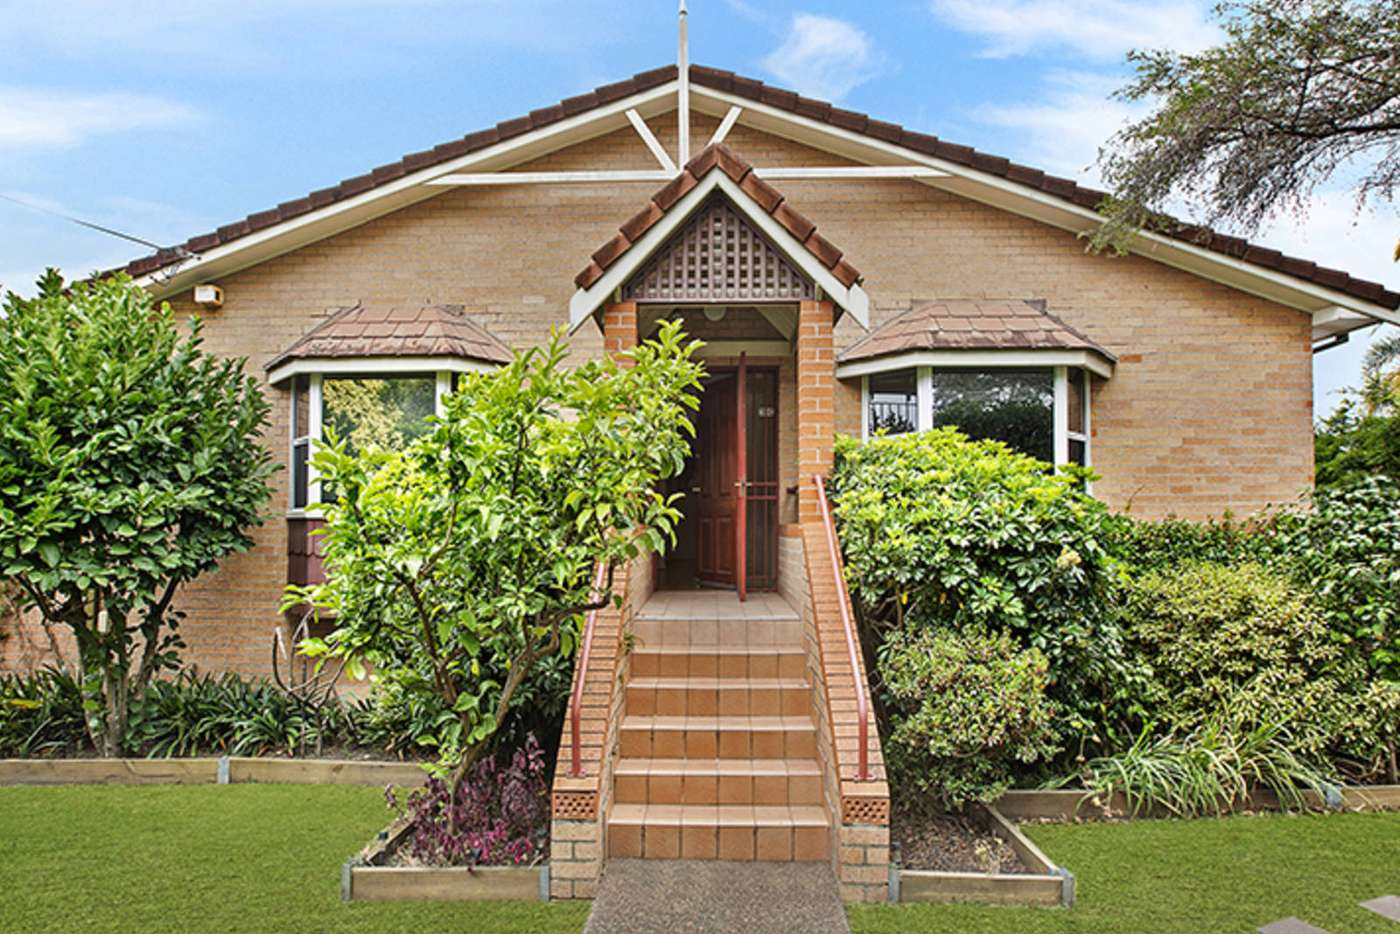 Seventh view of Homely townhouse listing, 1/19 Station Street, Naremburn NSW 2065